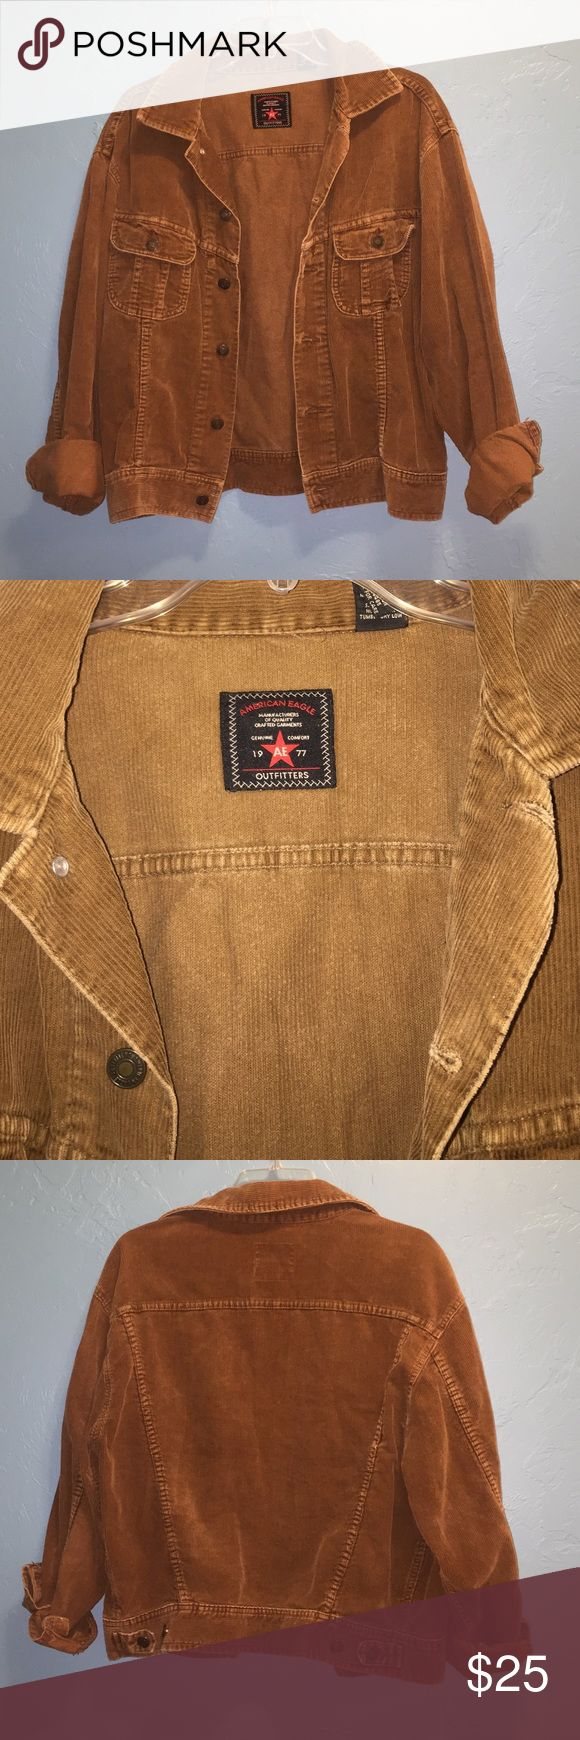 Vintage American Eagle Jacket Cute vintage corduroy jacket. I'm great condition. American Eagle Outfitters Jackets & Coats Jean Jackets